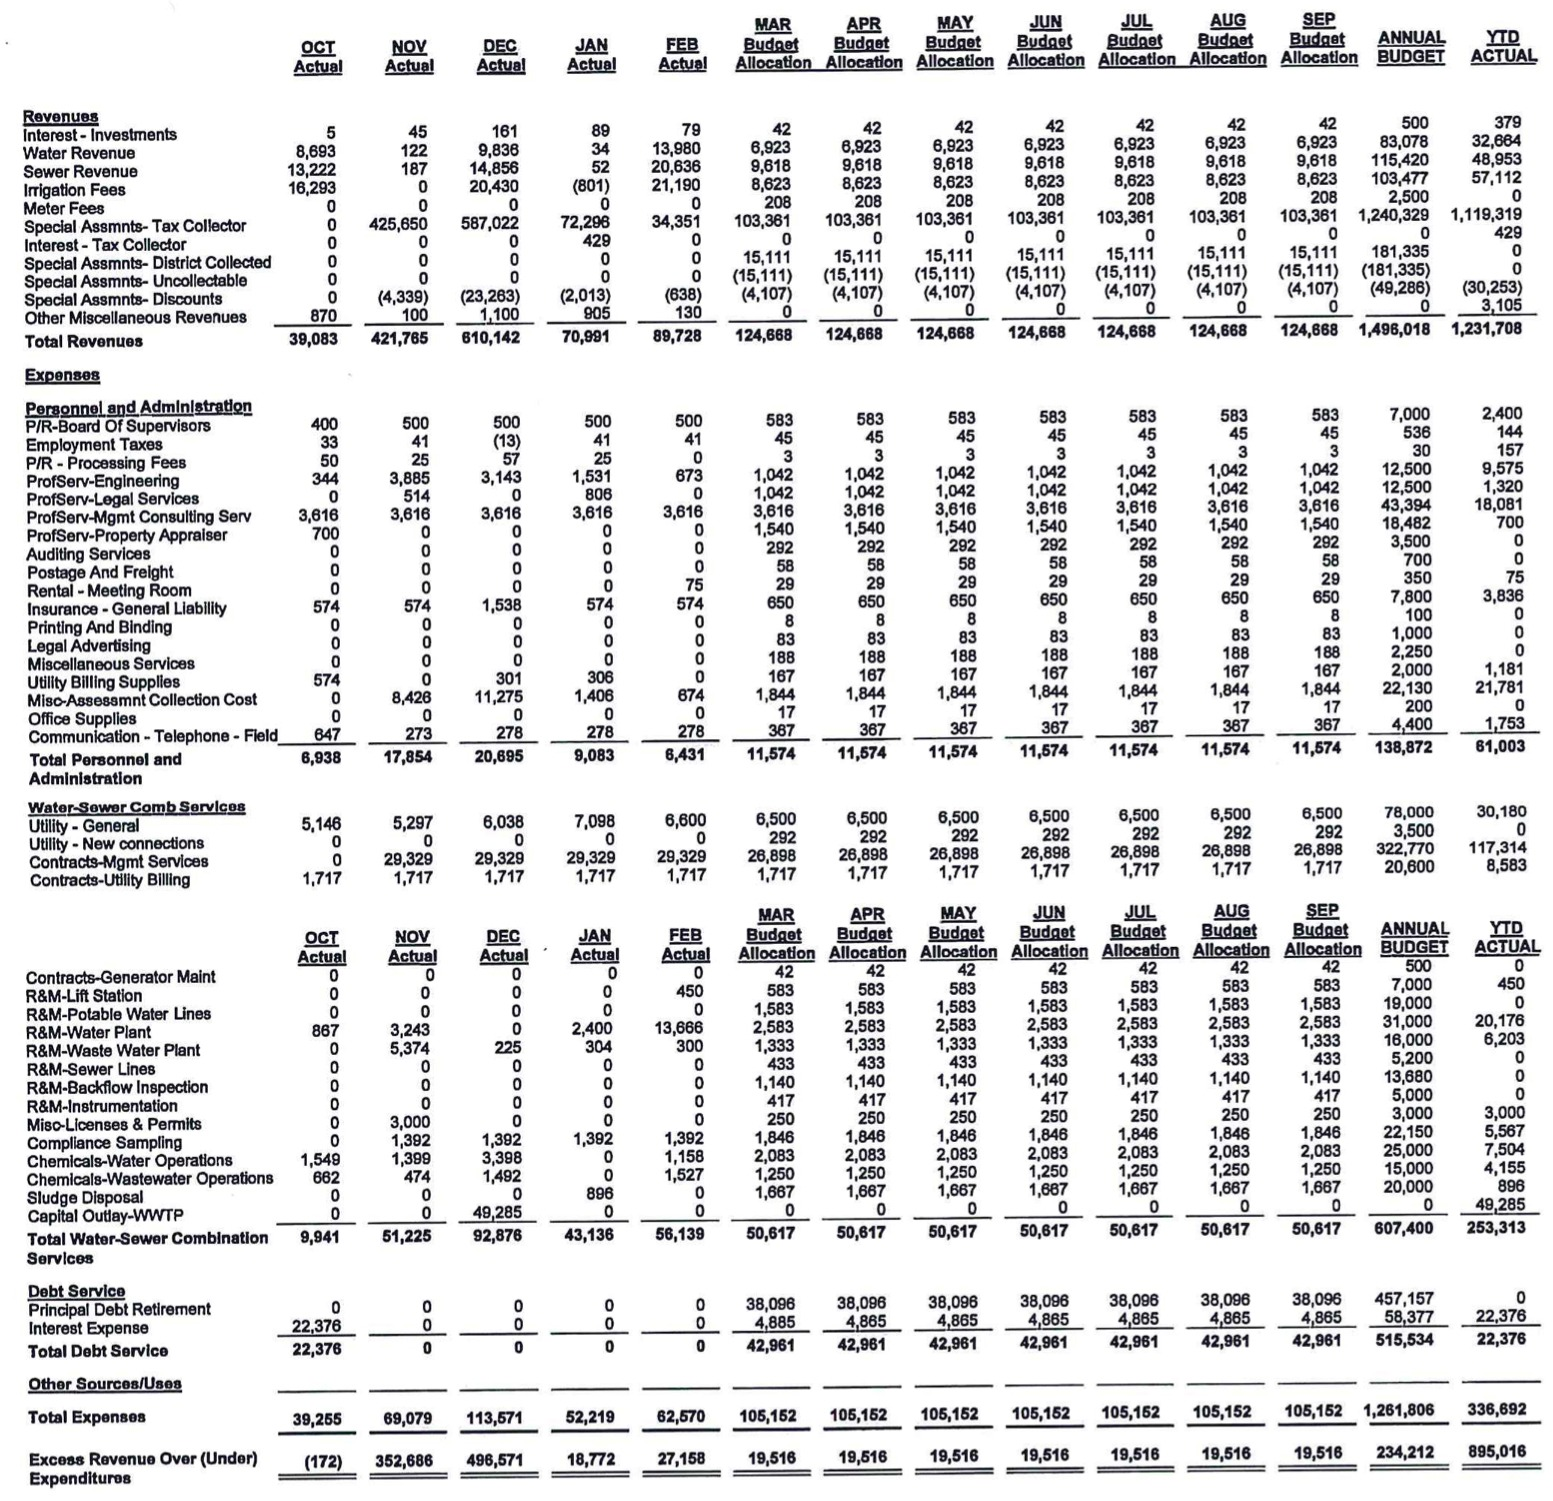 Statement of Revenues, Expenditures, and Changes in Fund Balances data. See below for table